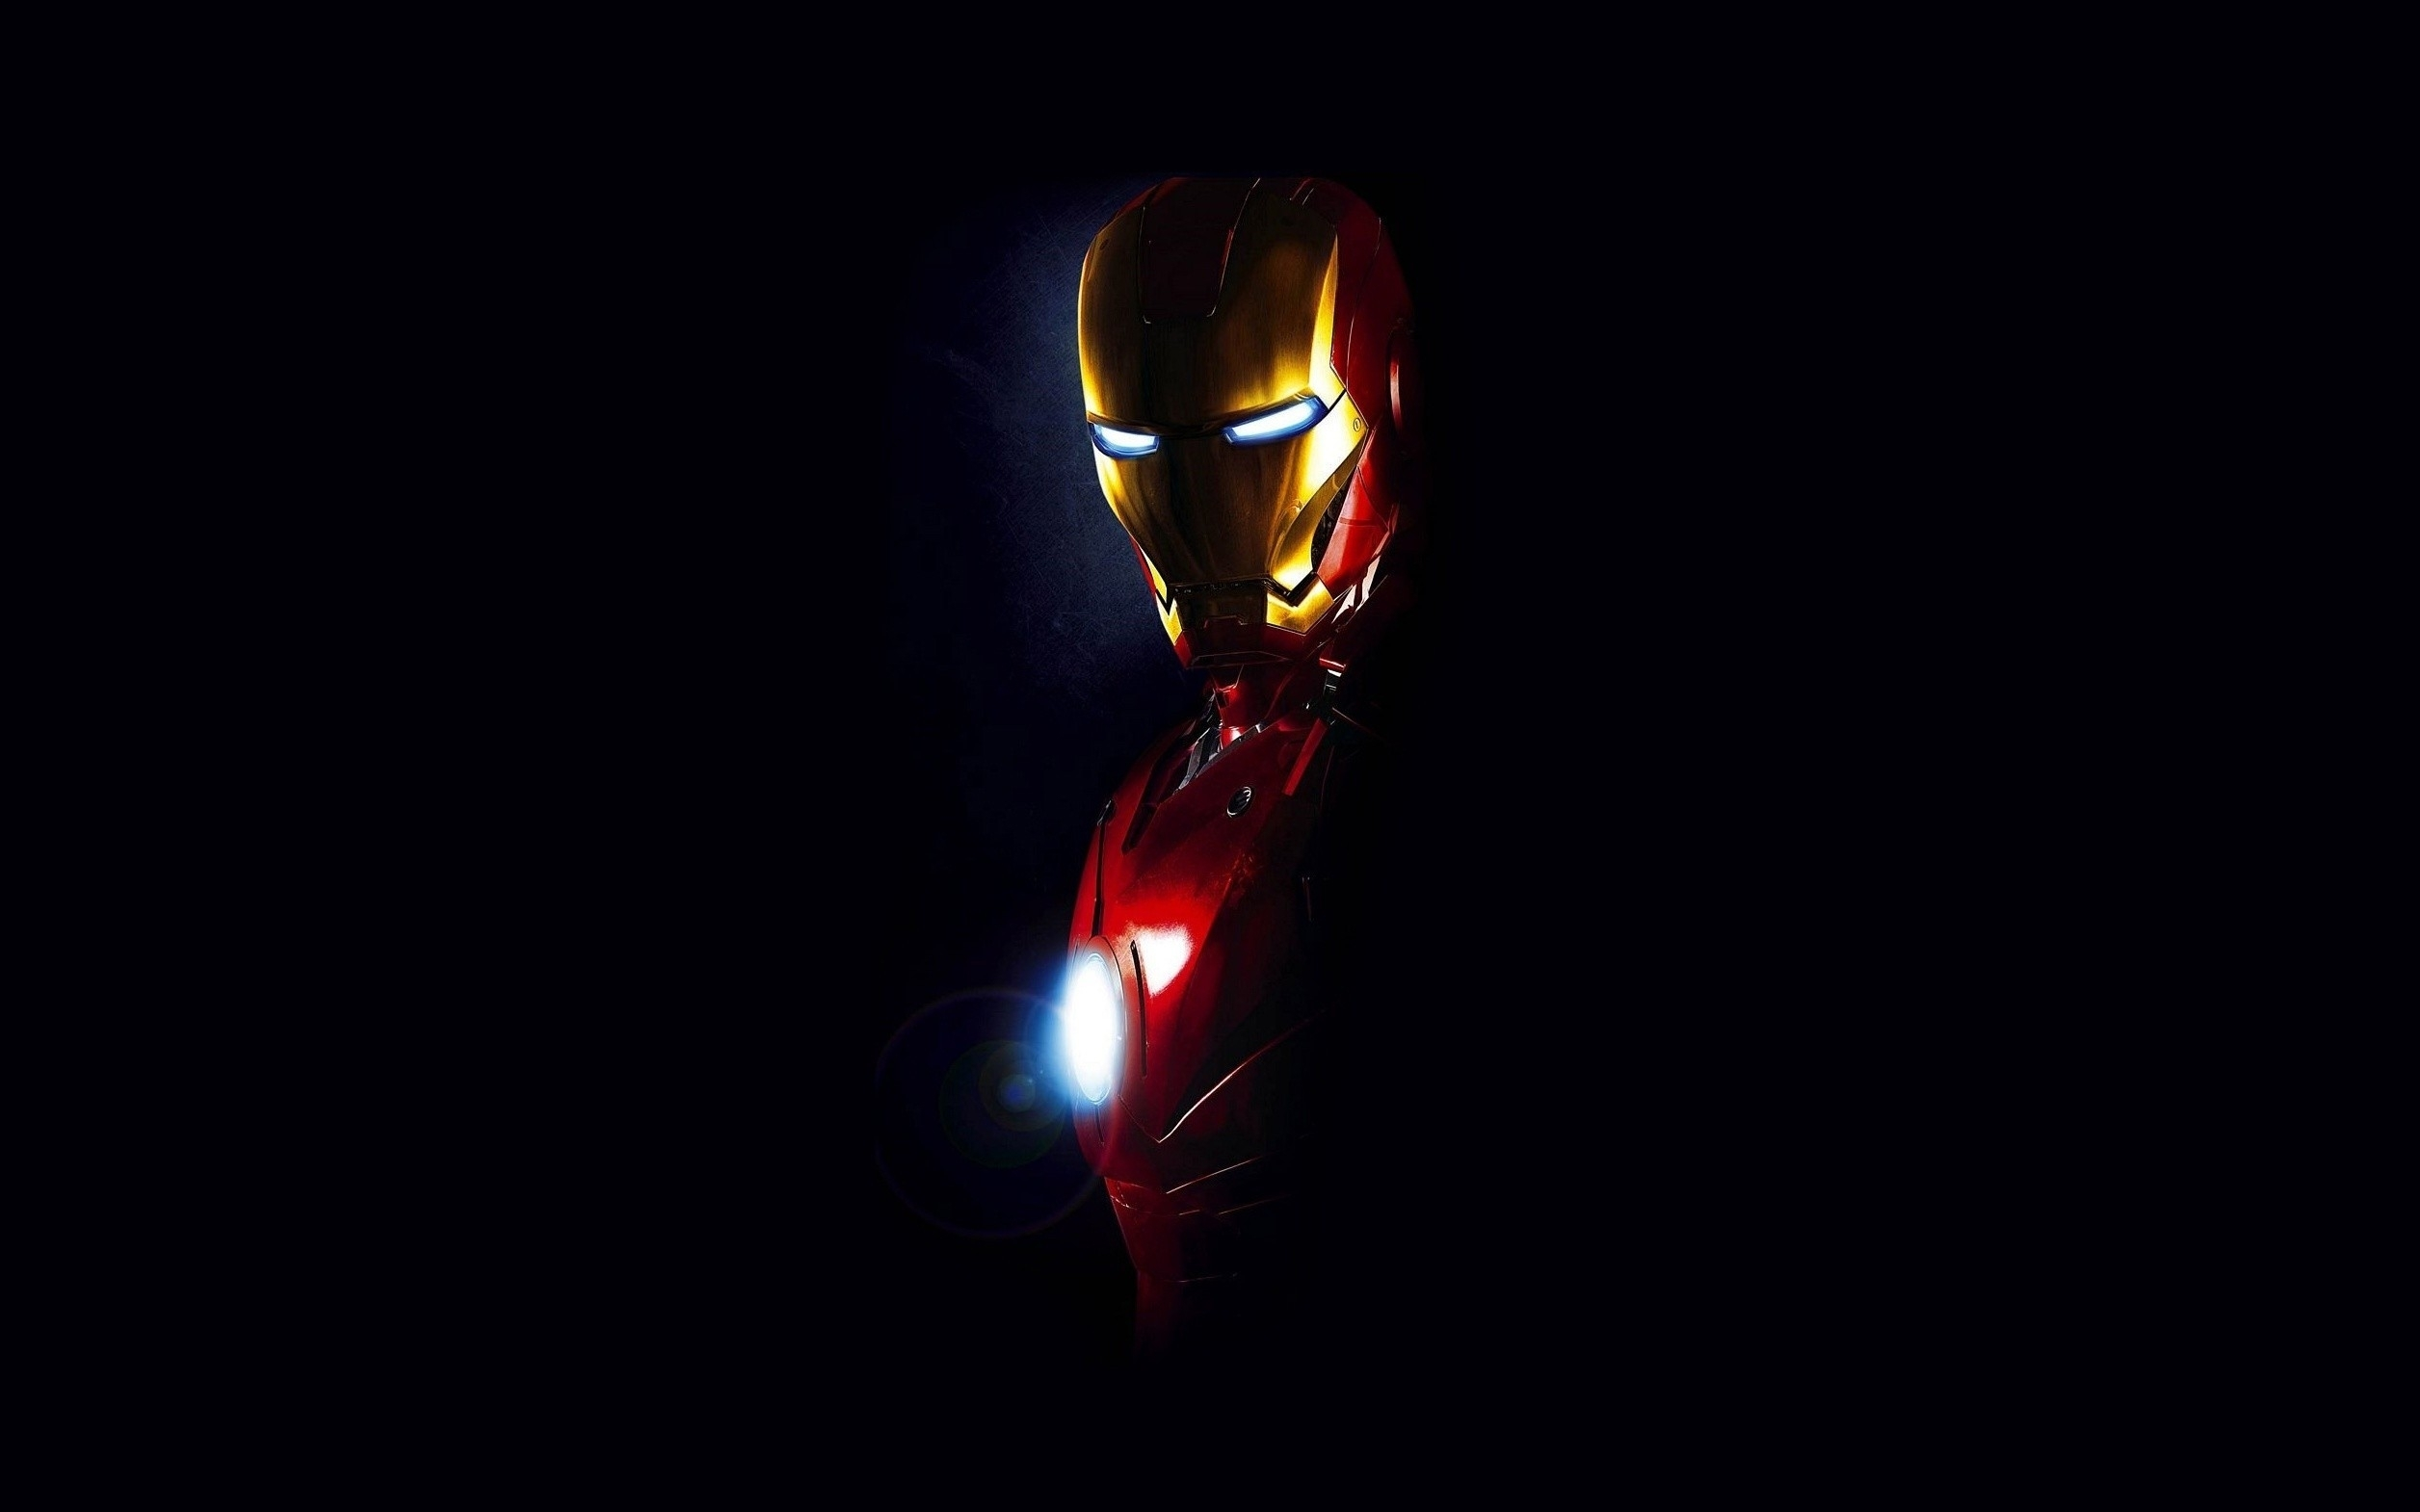 iron man 2 films fond noir papier peint | allwallpaper.in #12631